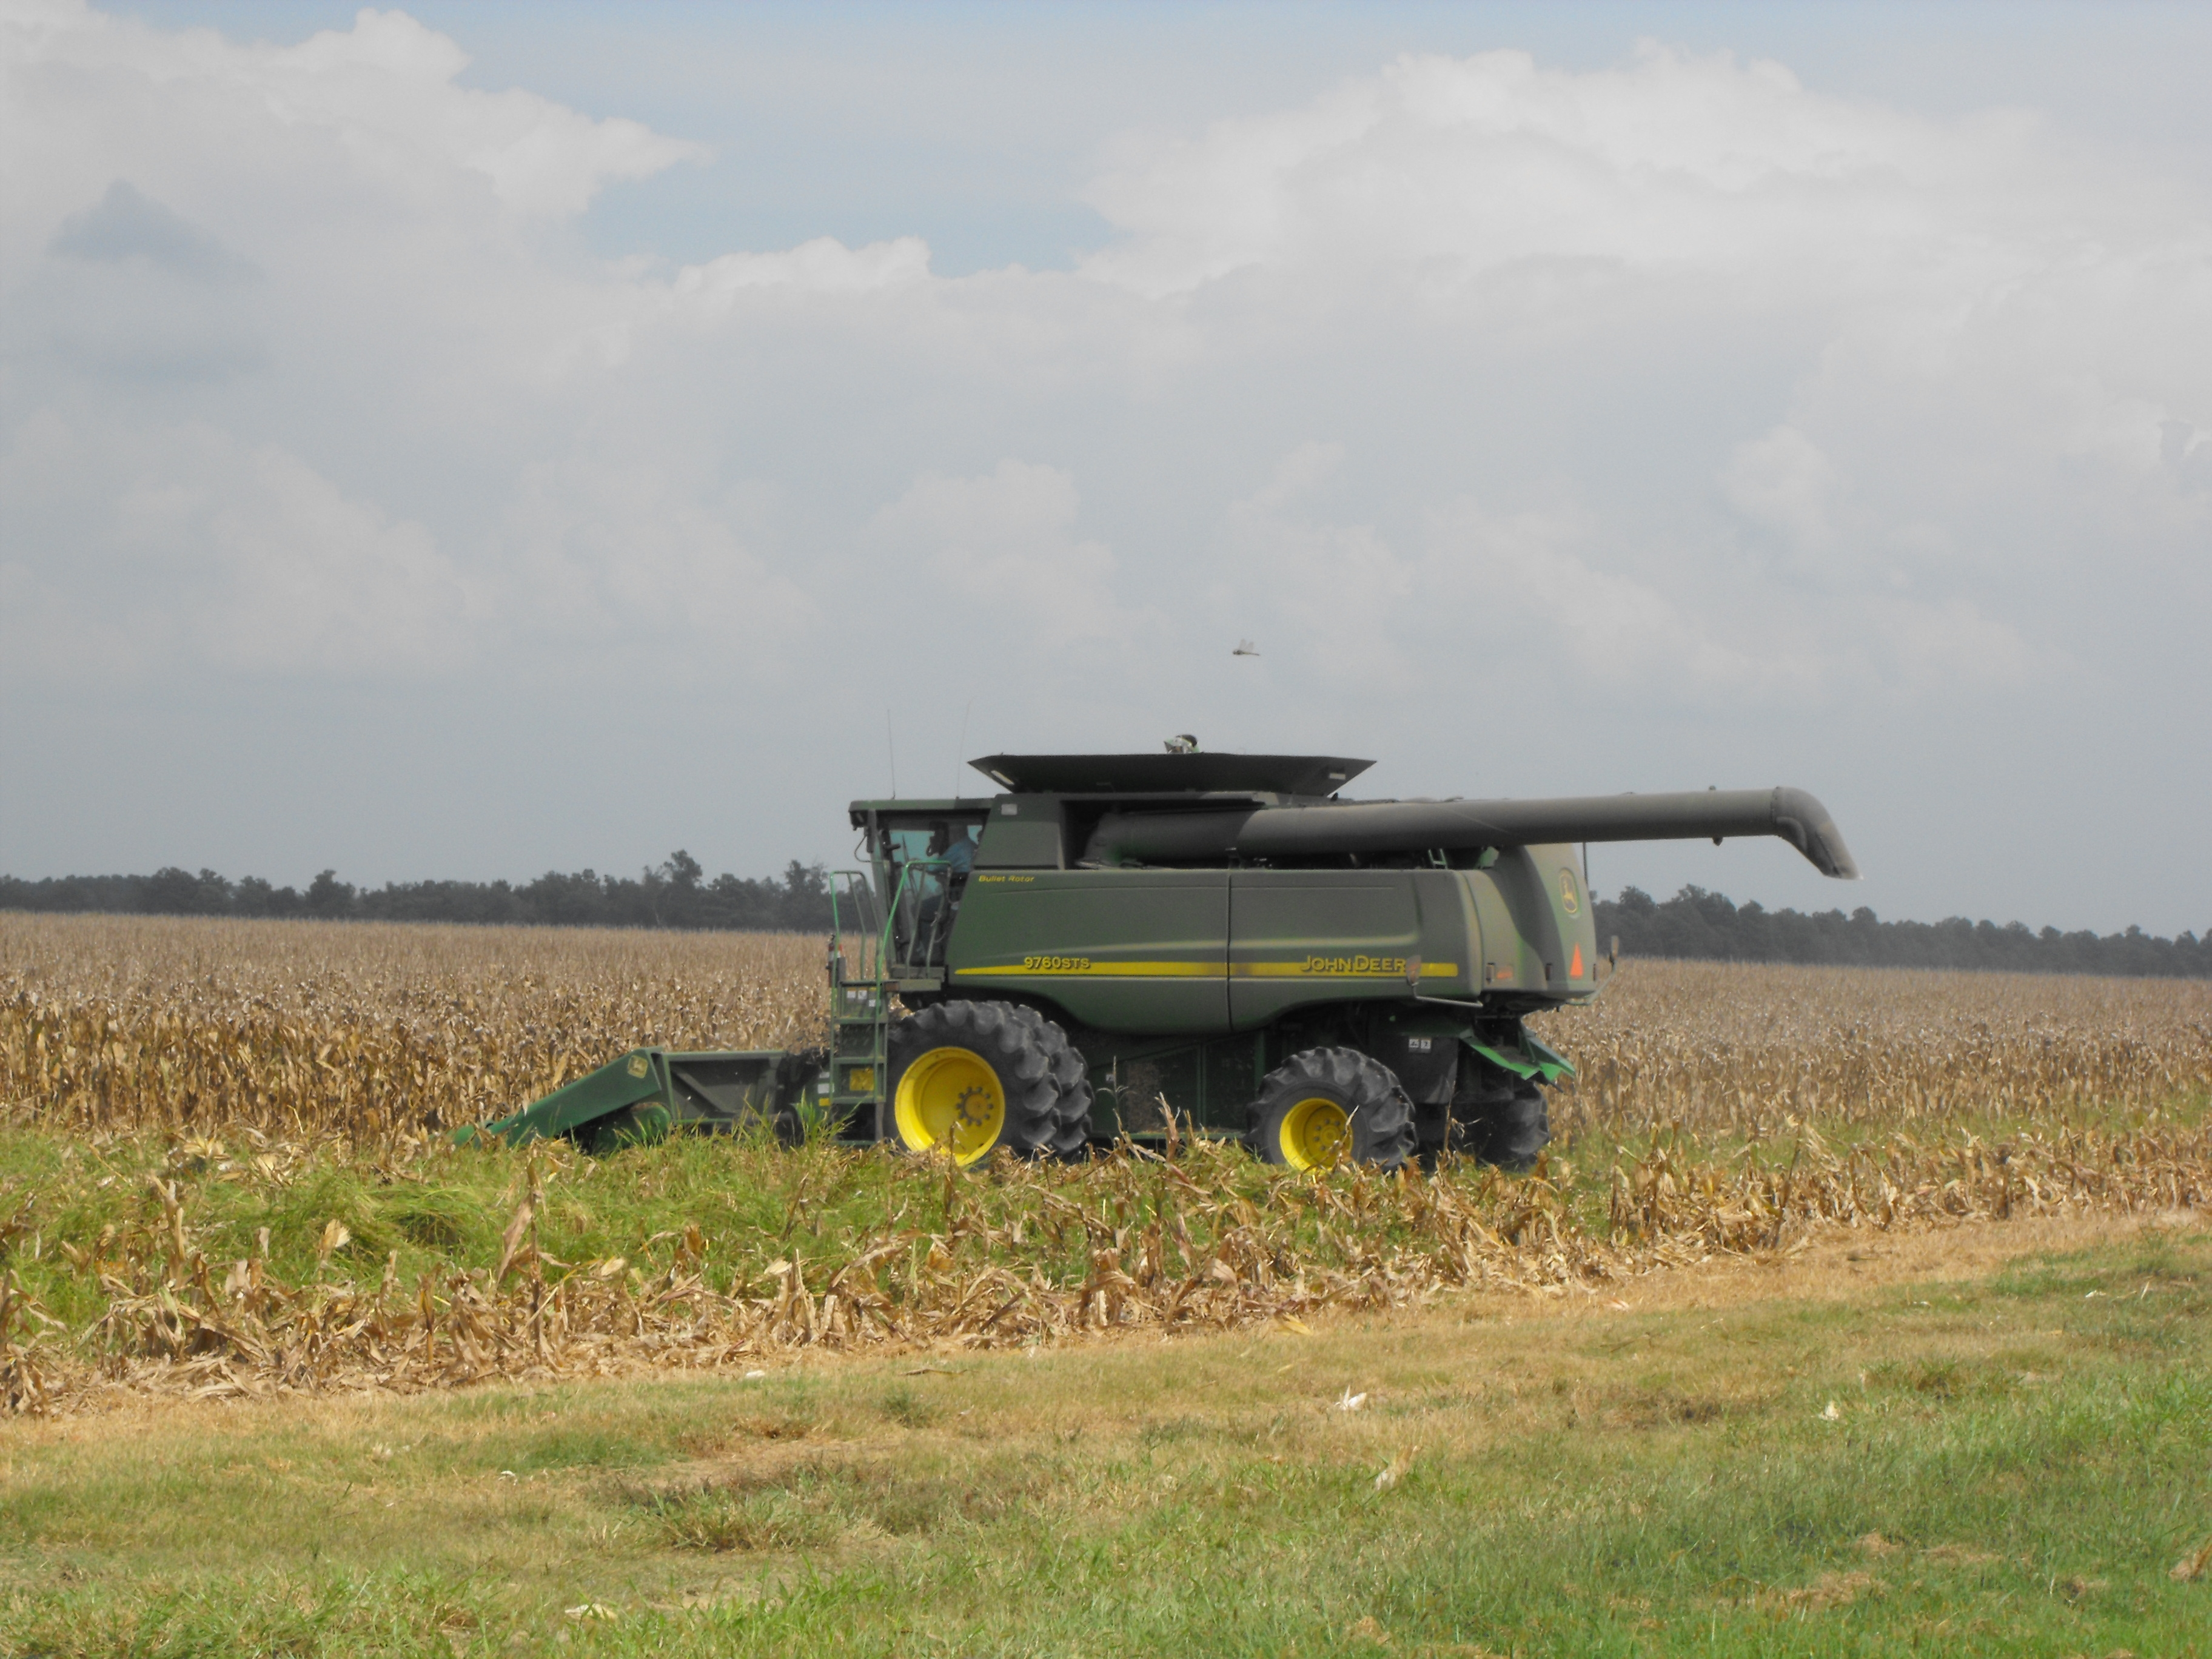 Picture of a combine in a field